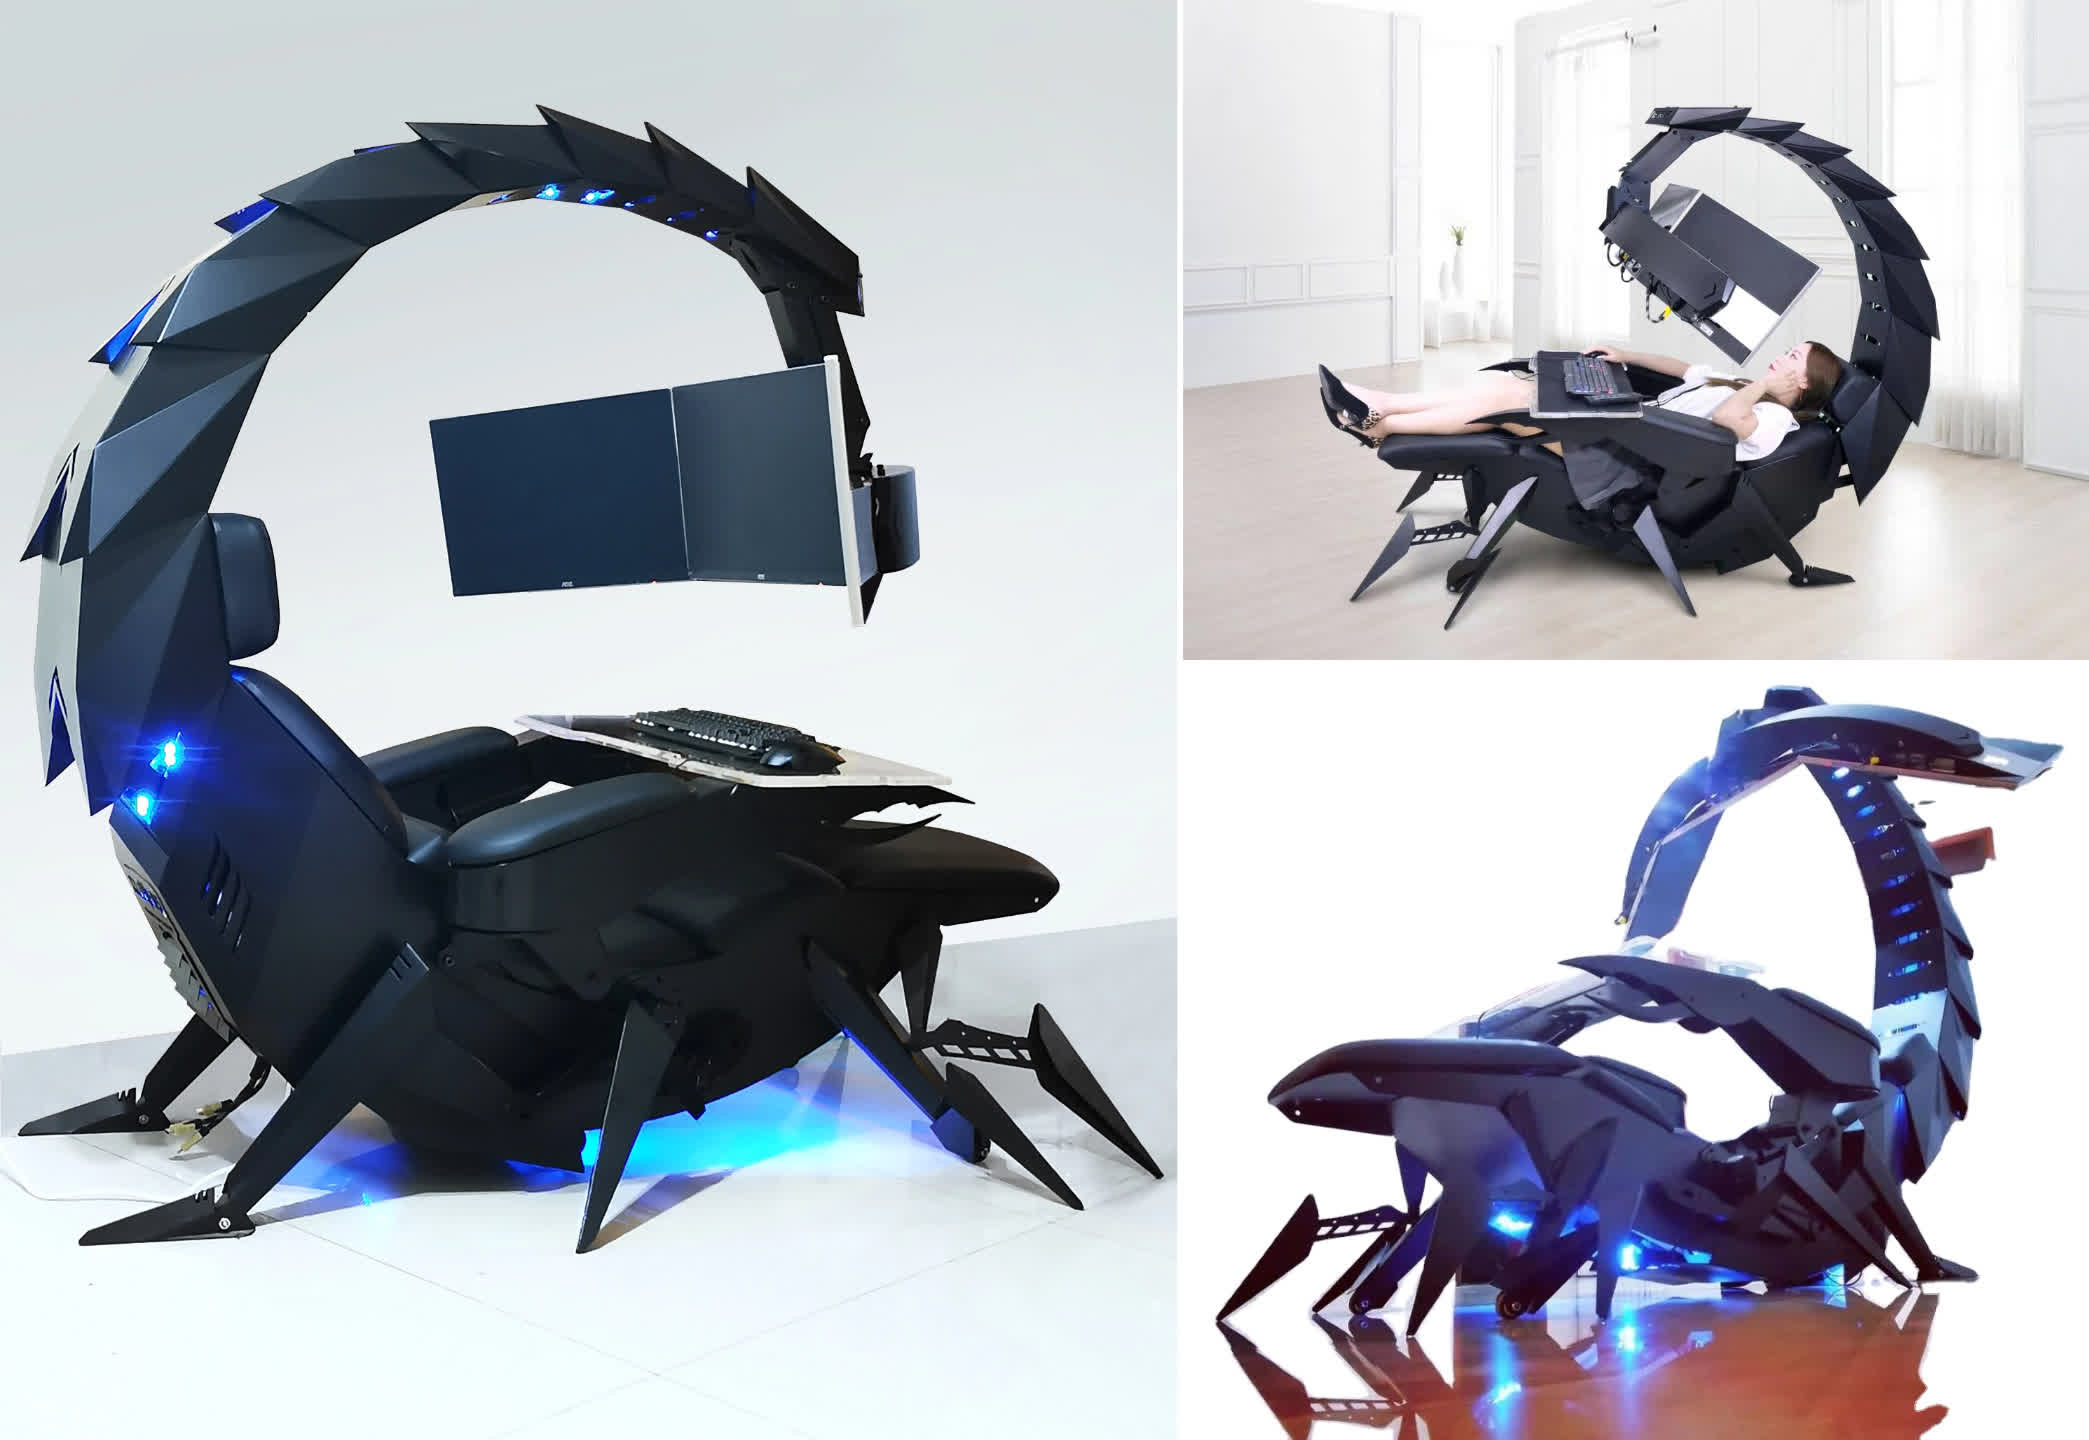 , Sting your competition with this giant scorpion gaming cockpit from Cluvens